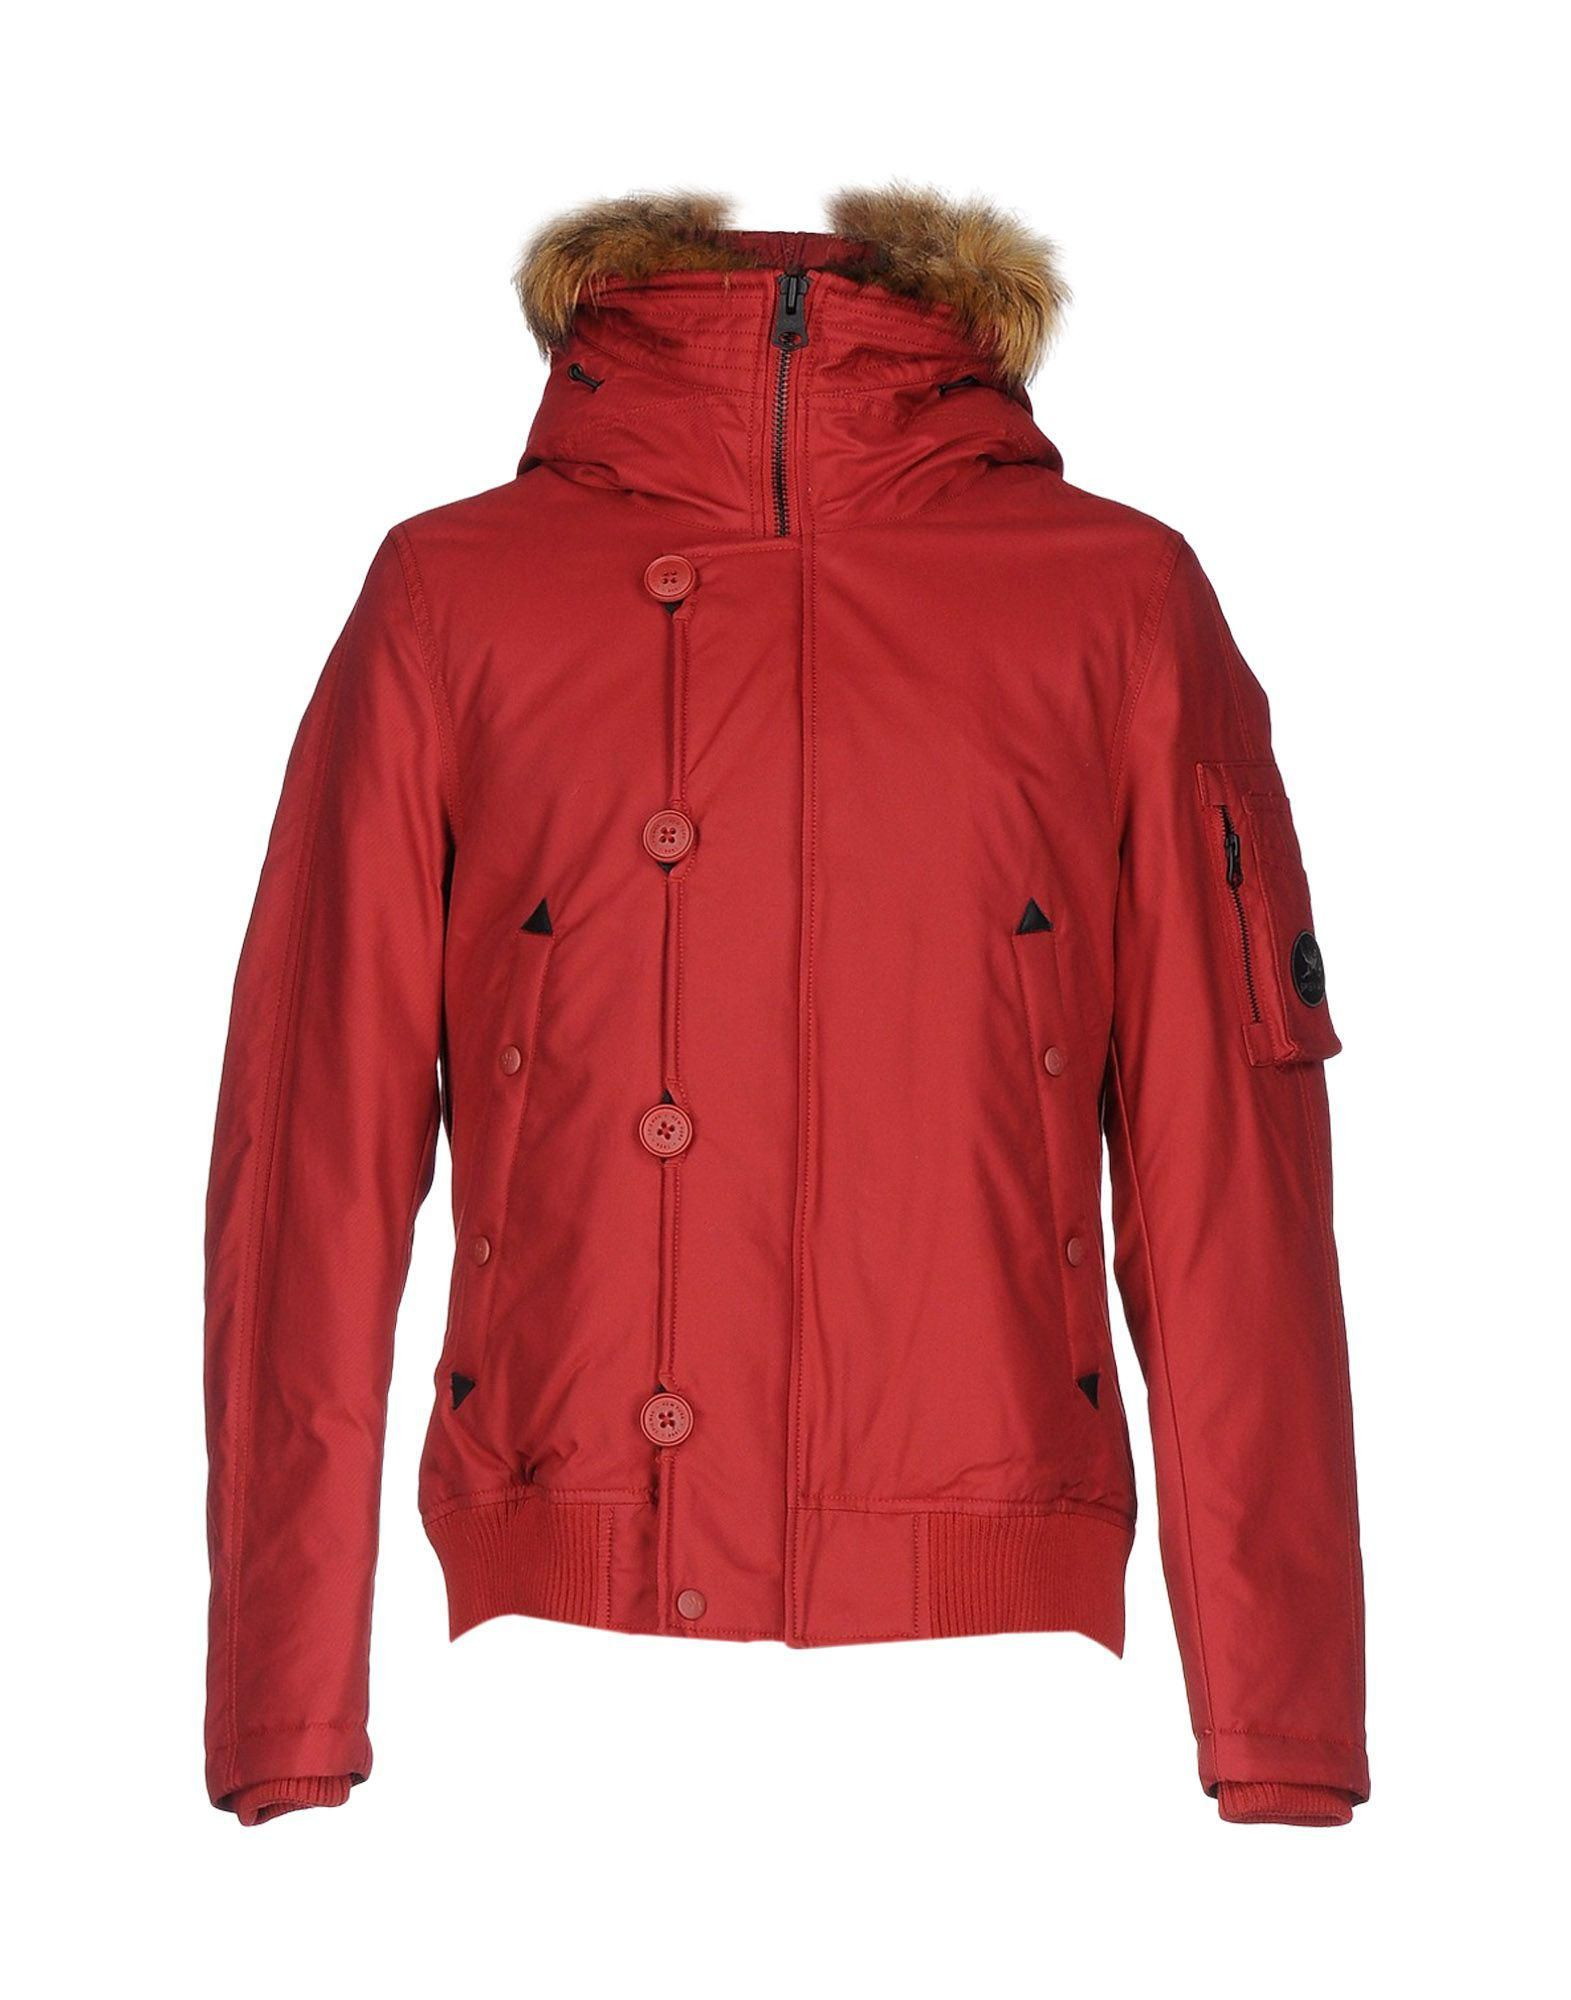 740b88400f2ad Men's Red Down Jacket | parka jackets | Jackets, Rain jacket, Parka